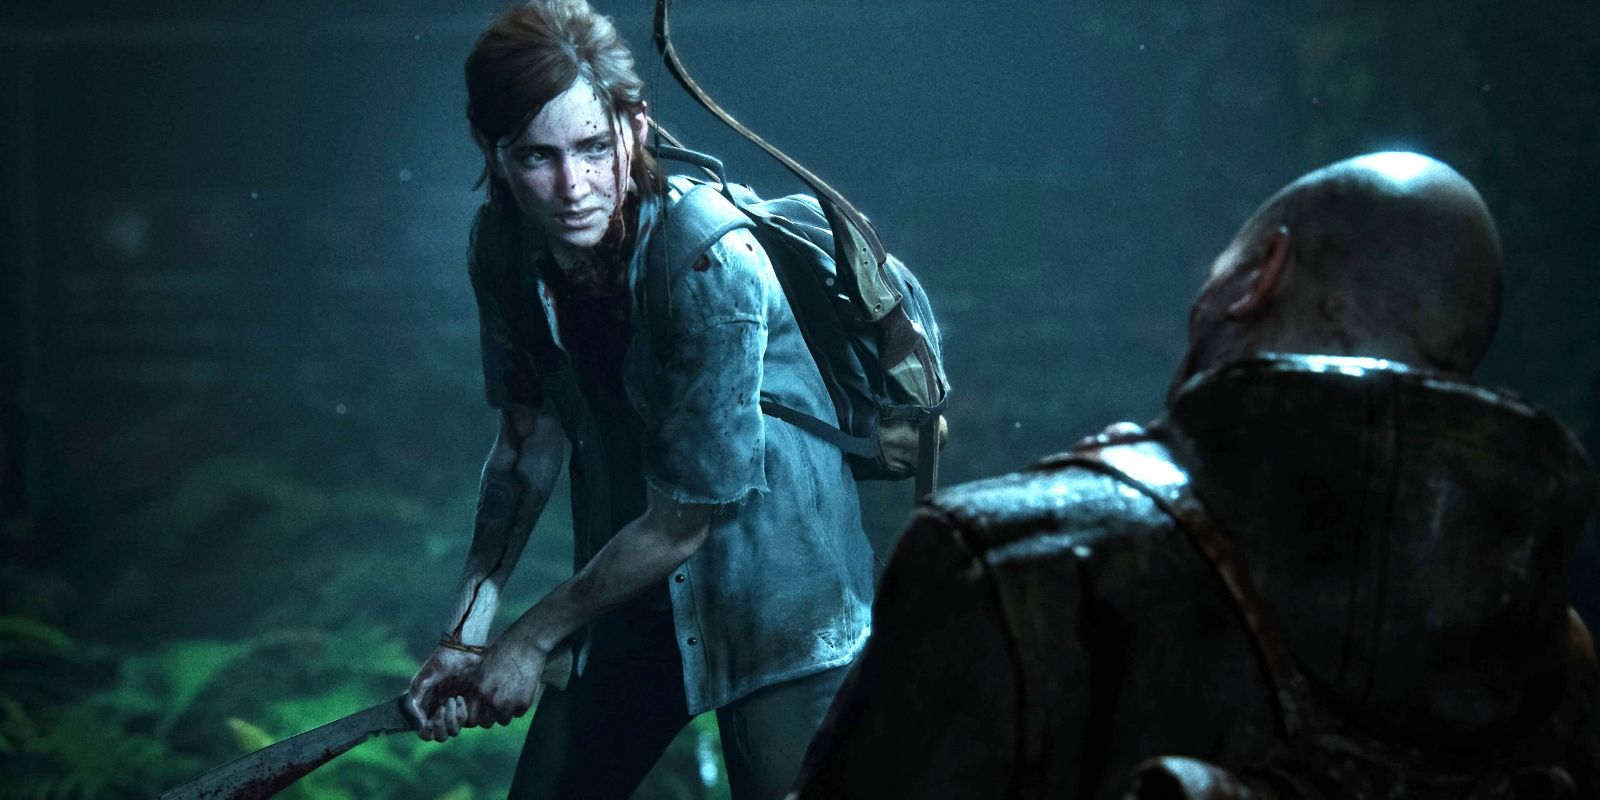 The Last of Us Part II: What Naughty Dog Revealed About the Gameplay